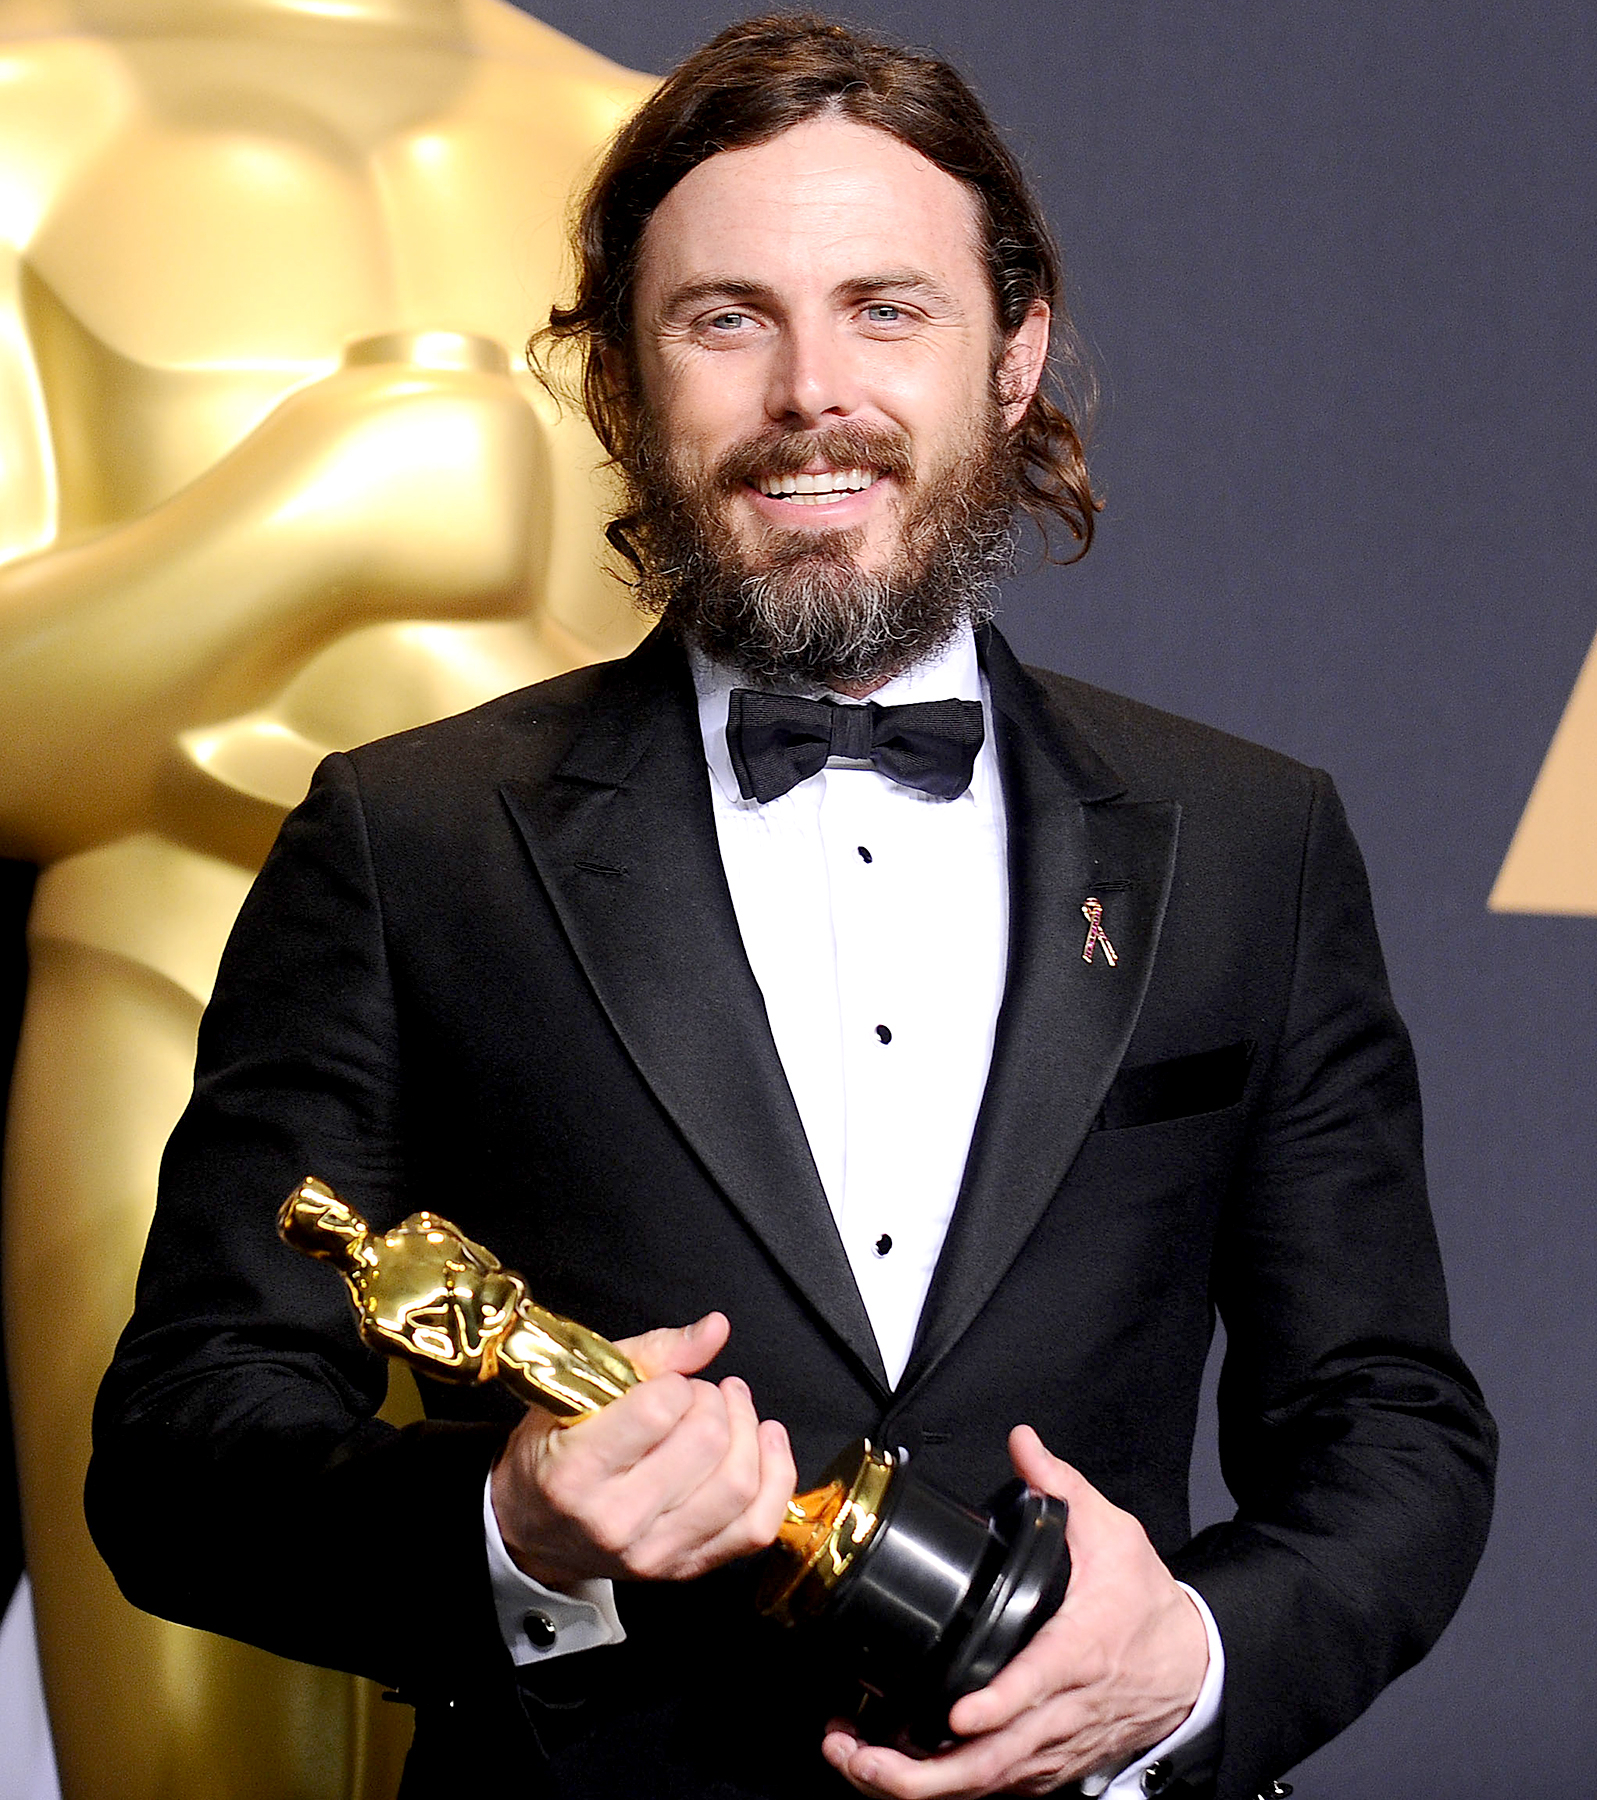 Casey Affleck poses in the press room at the 89th annual Academy Awards at Hollywood & Highland Center on Feb. 26, 2017 in Hollywood, California.